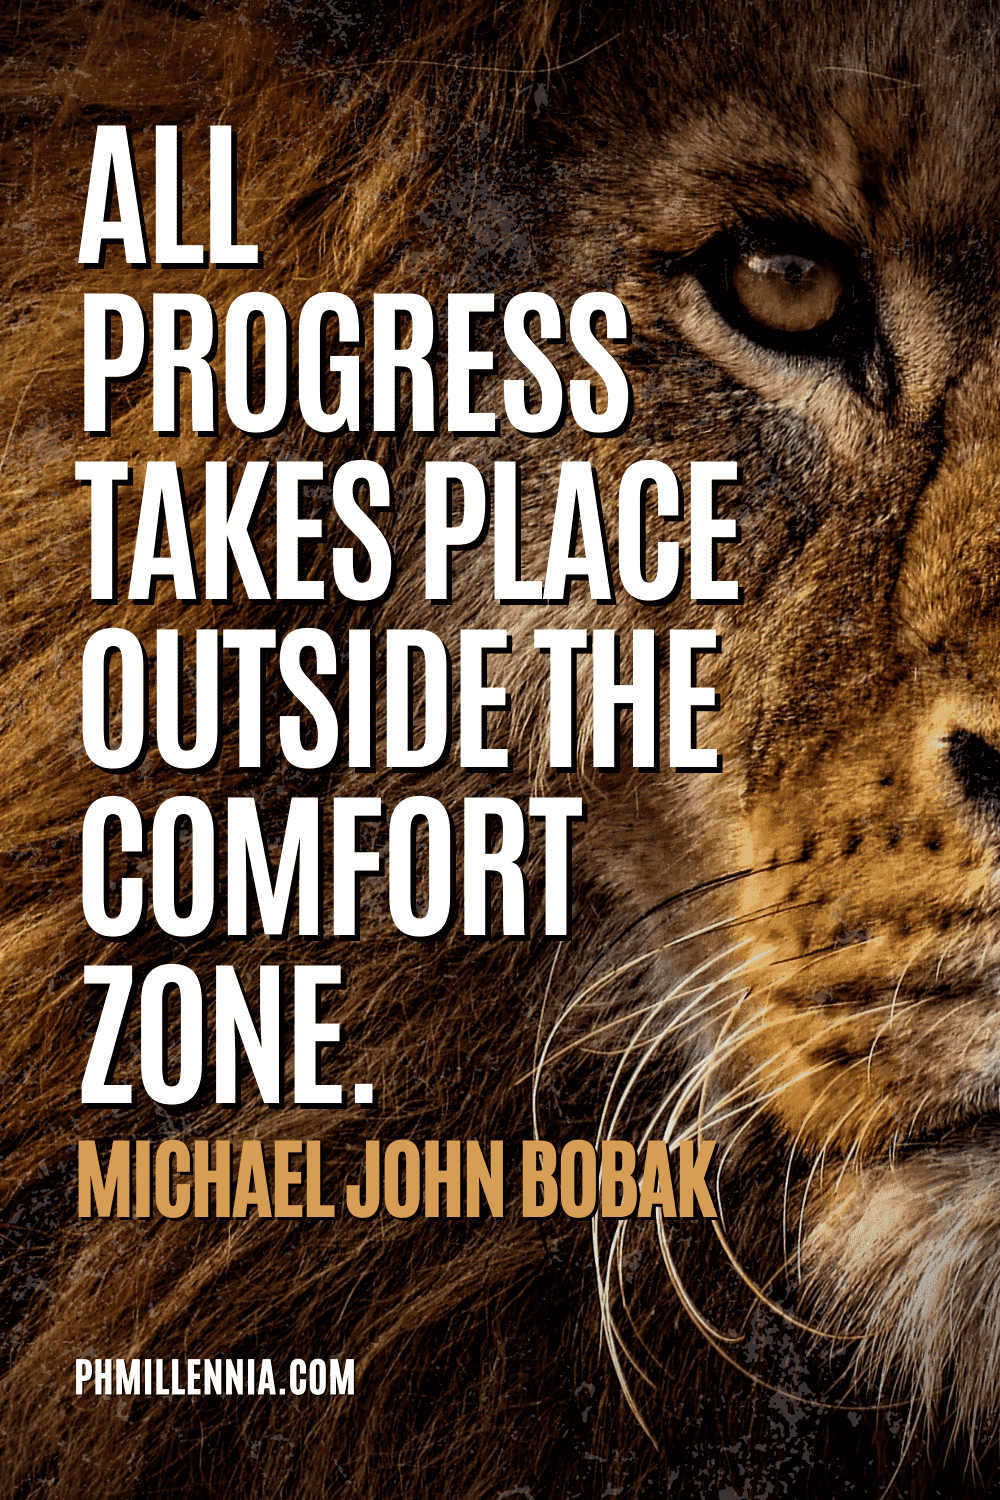 """A graphic containing text on an image of a lion, intended as a Pinterest Pin for the article """"199 Quotes on Success to Inspire You to Greatness"""" on phmillennia.com"""